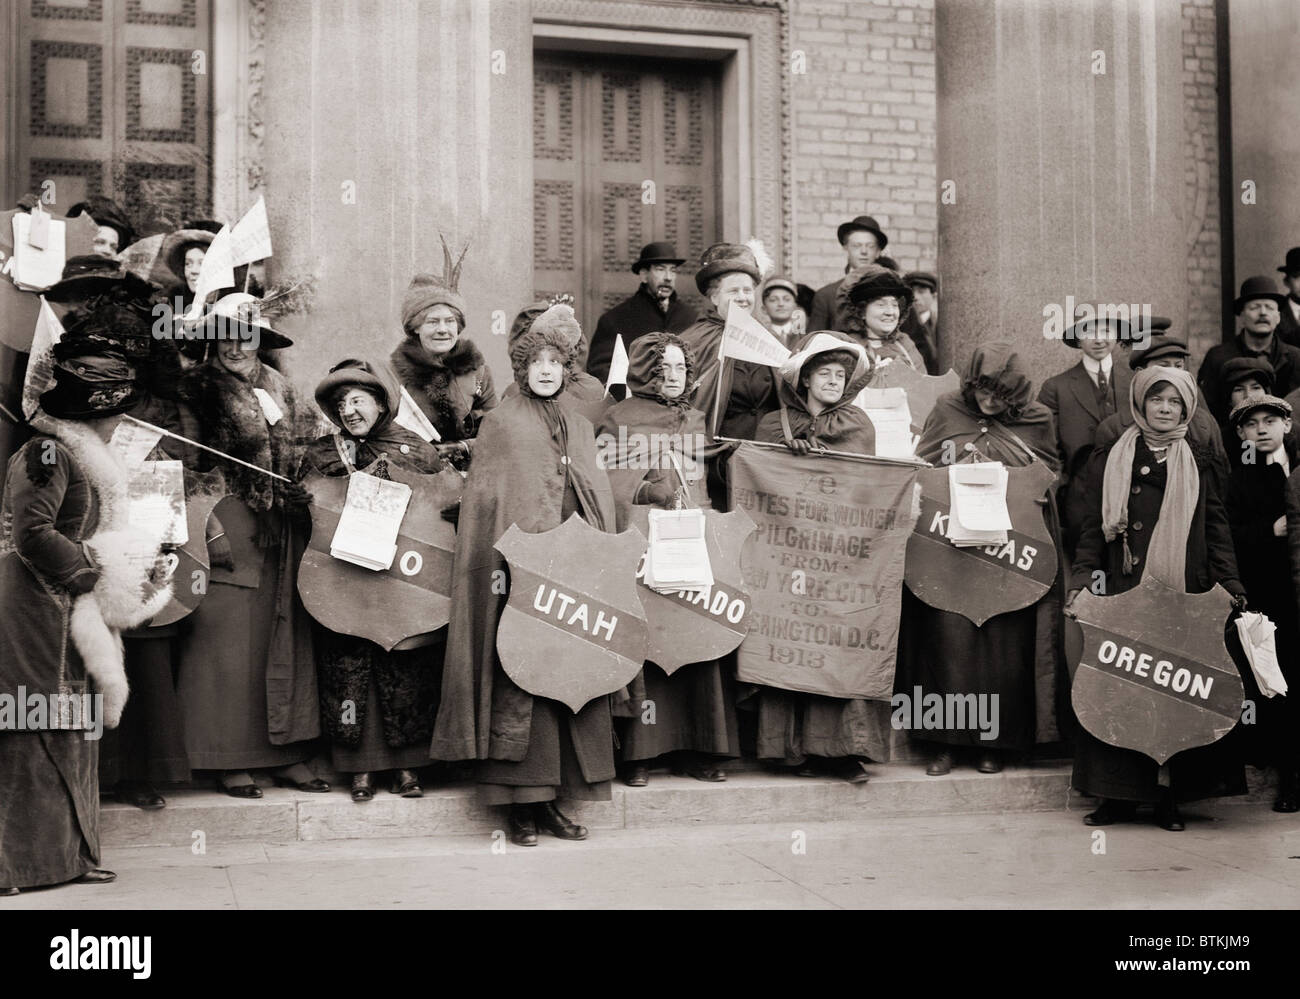 Women's Suffrage hikers who took part in the walk from New York City to Washington, D.C. to join the National - Stock Image